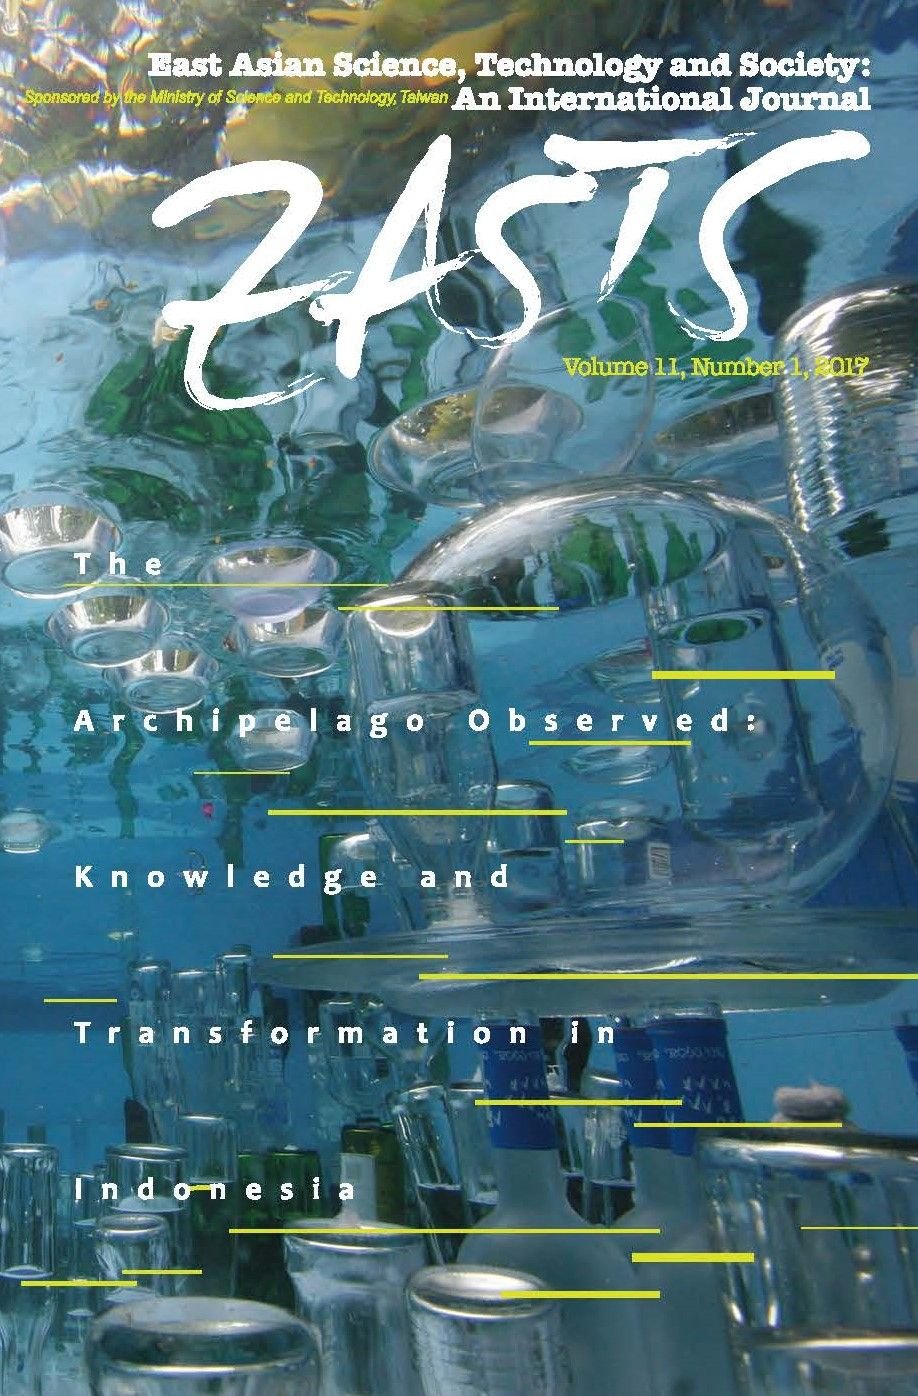 EASTS Cover 11.1